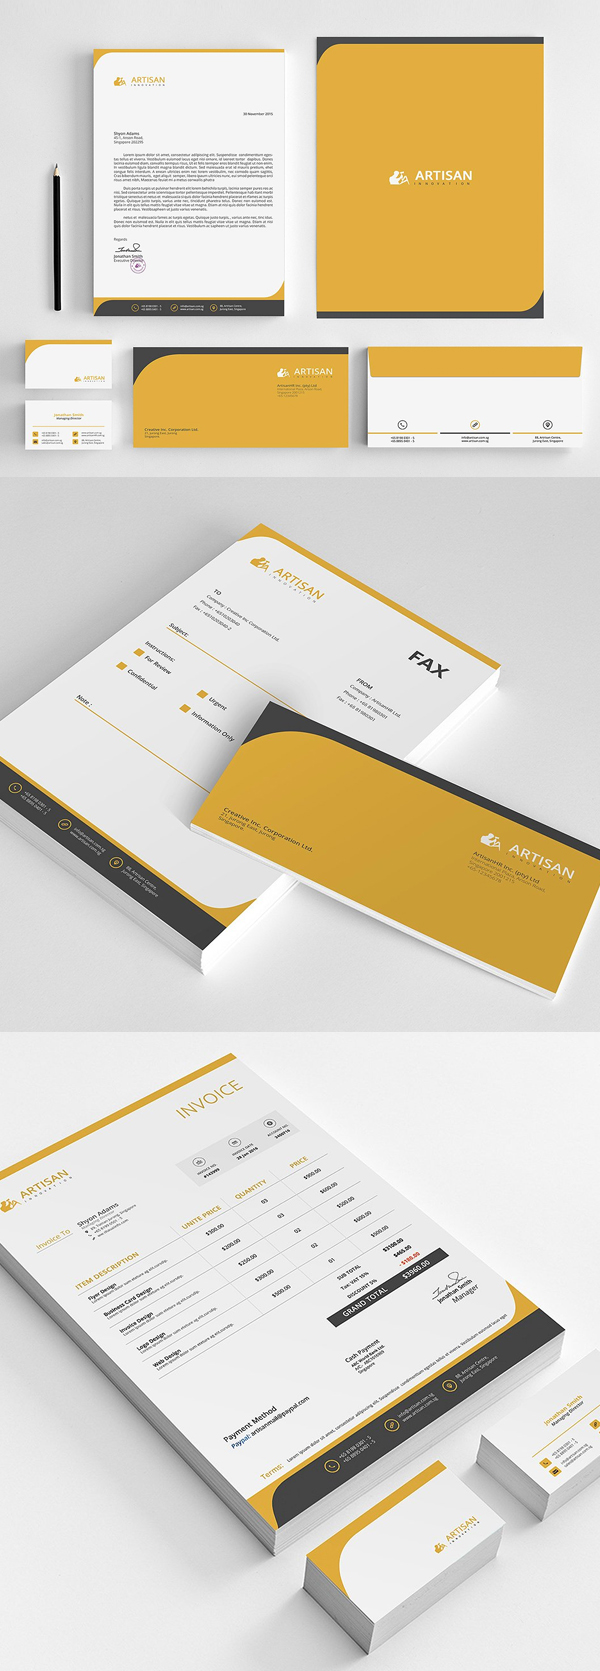 Modern Business Branding / Stationery Templates Design - 15